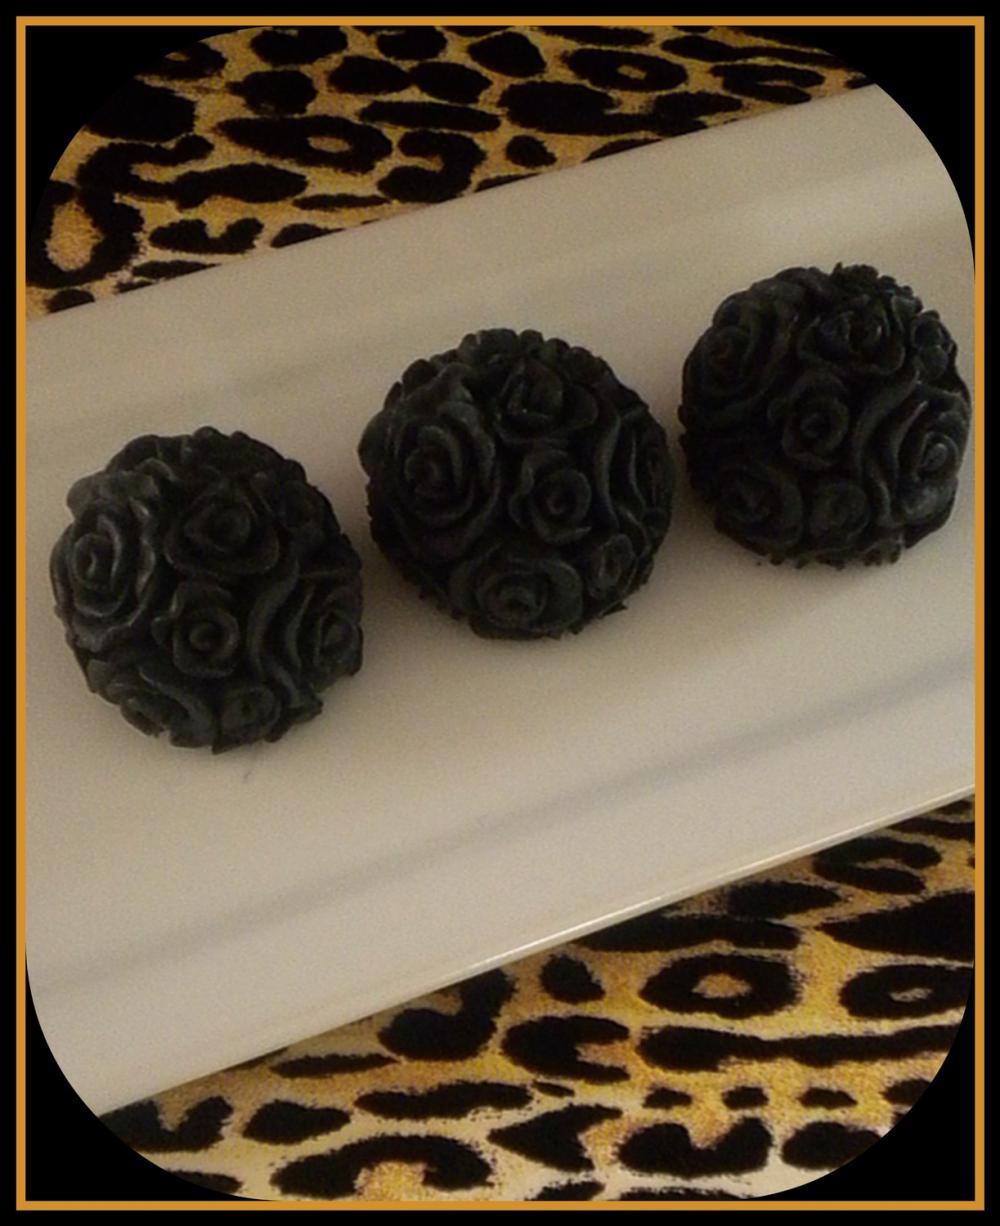 Soap - Black Roses - Made with Goat's Milk - Set of 3 - You Choose Scent